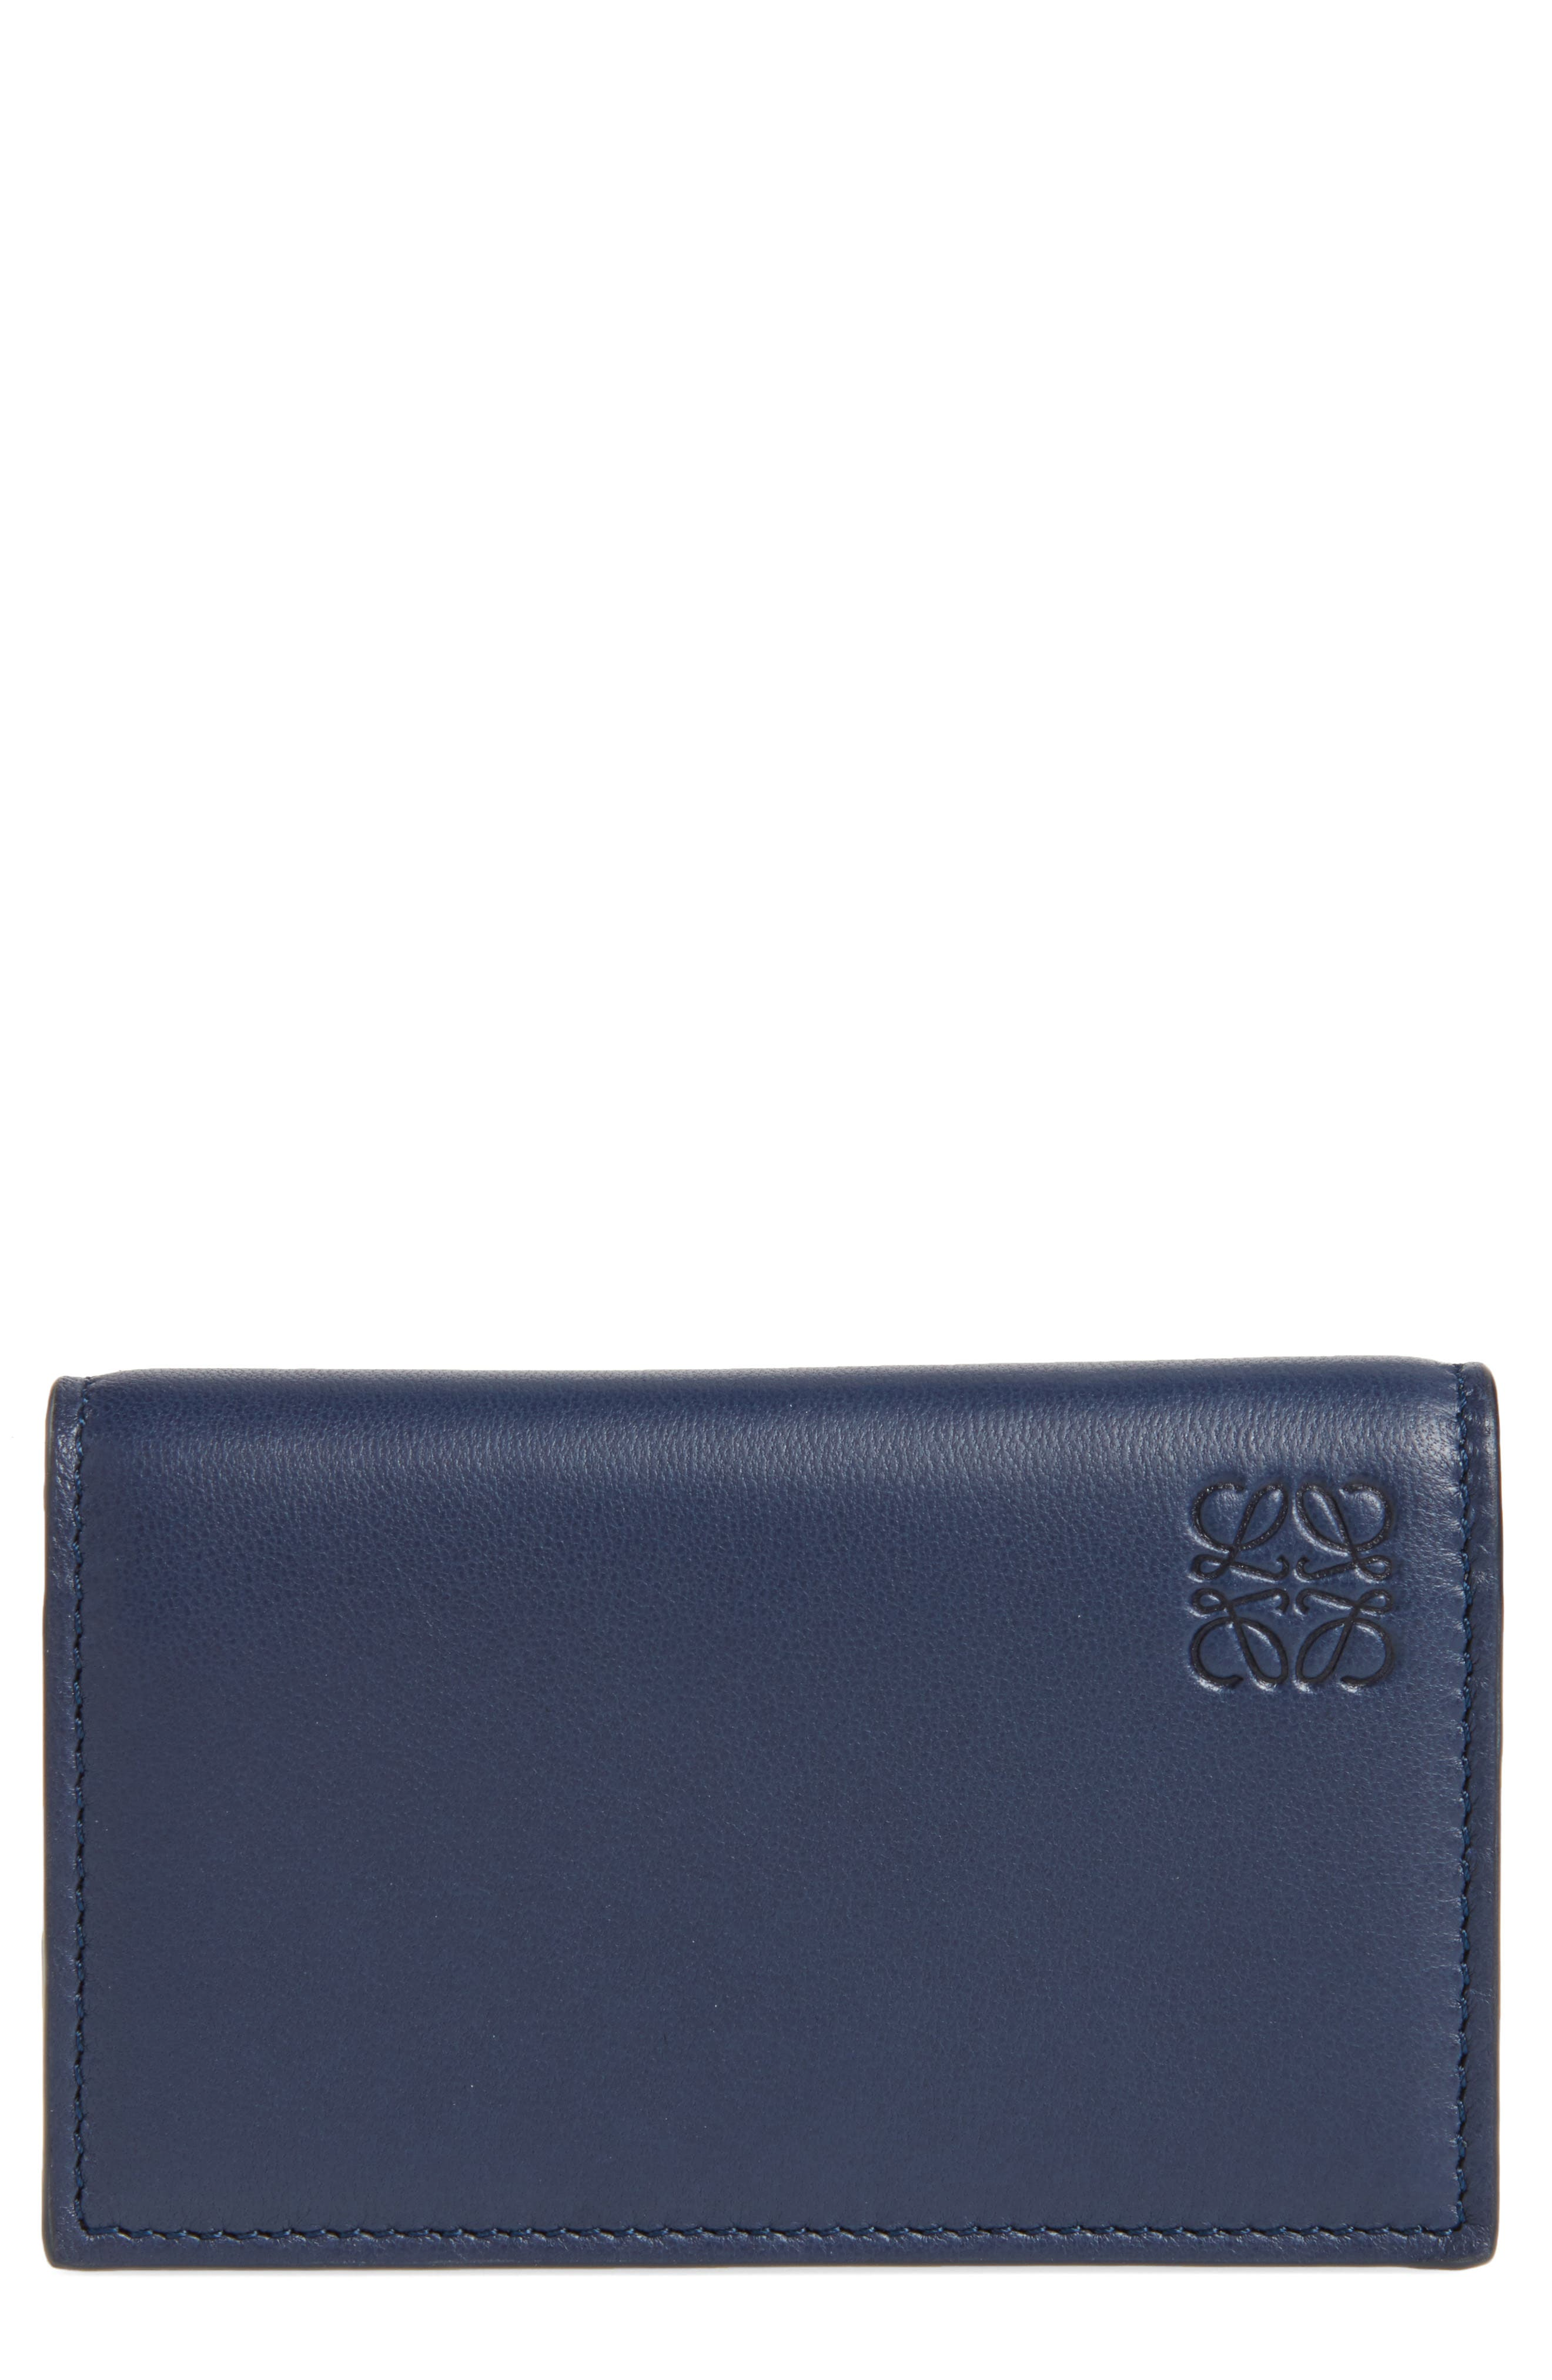 Calfskin Leather Business Card Case,                         Main,                         color, Navy